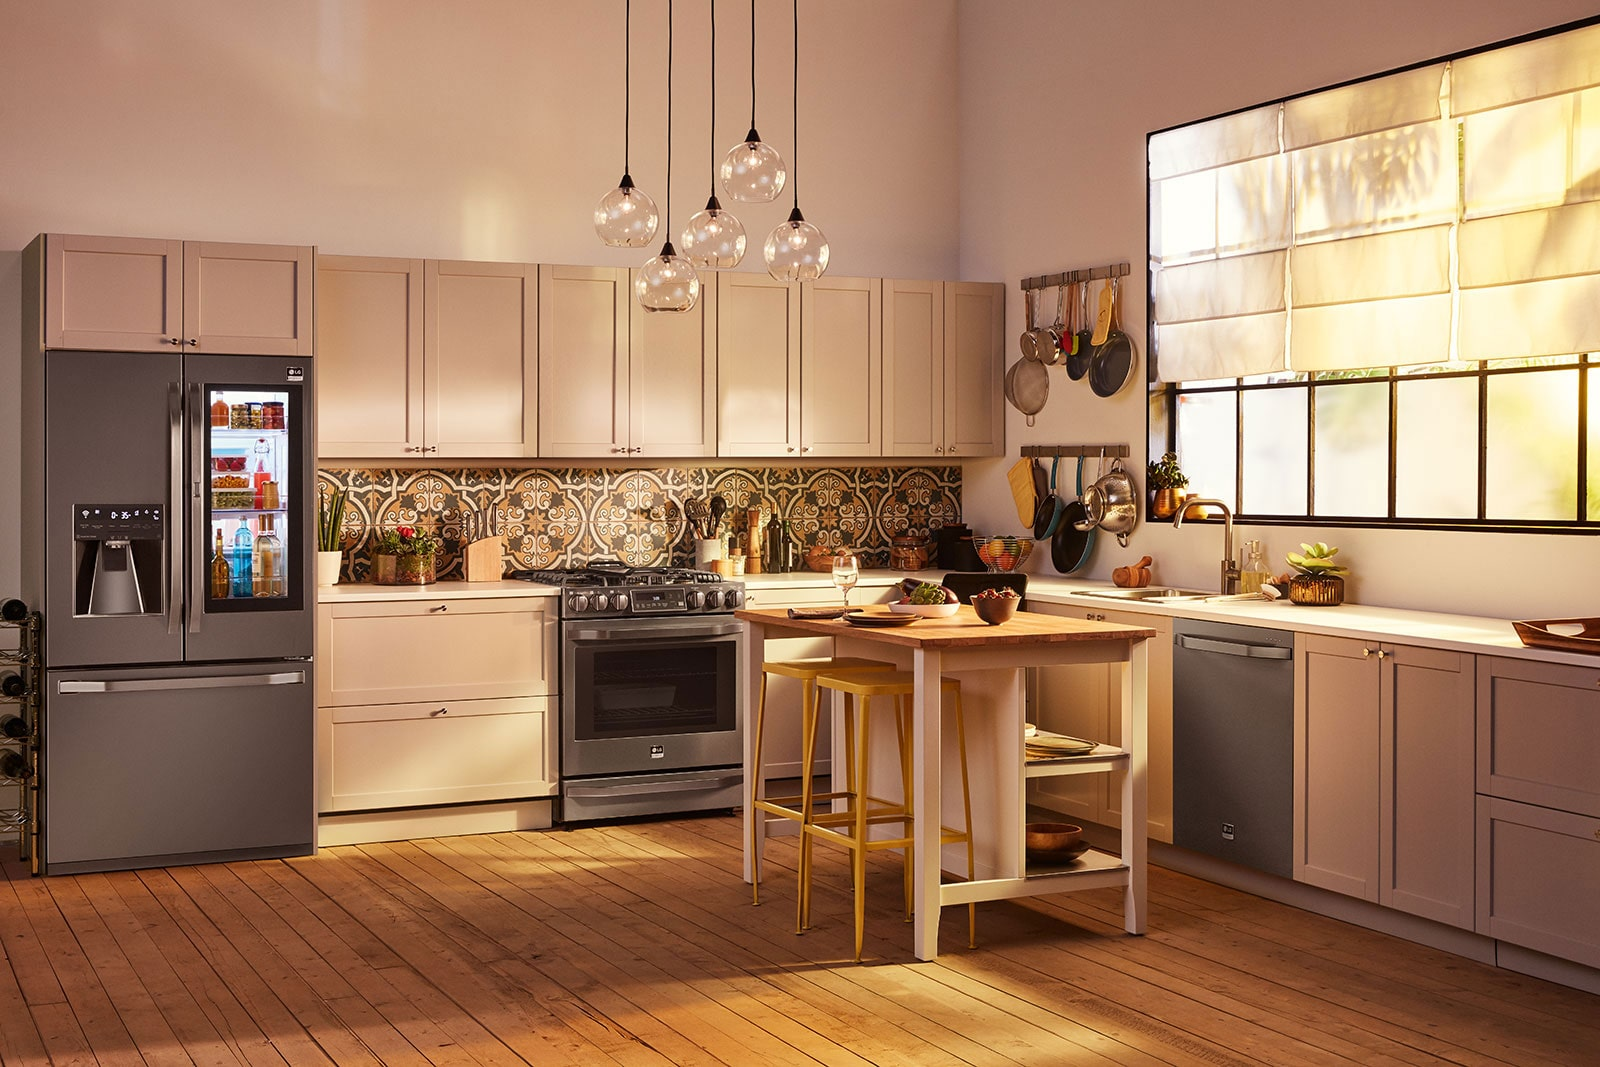 10 surprising ways appliance technology has changed to make your life easier